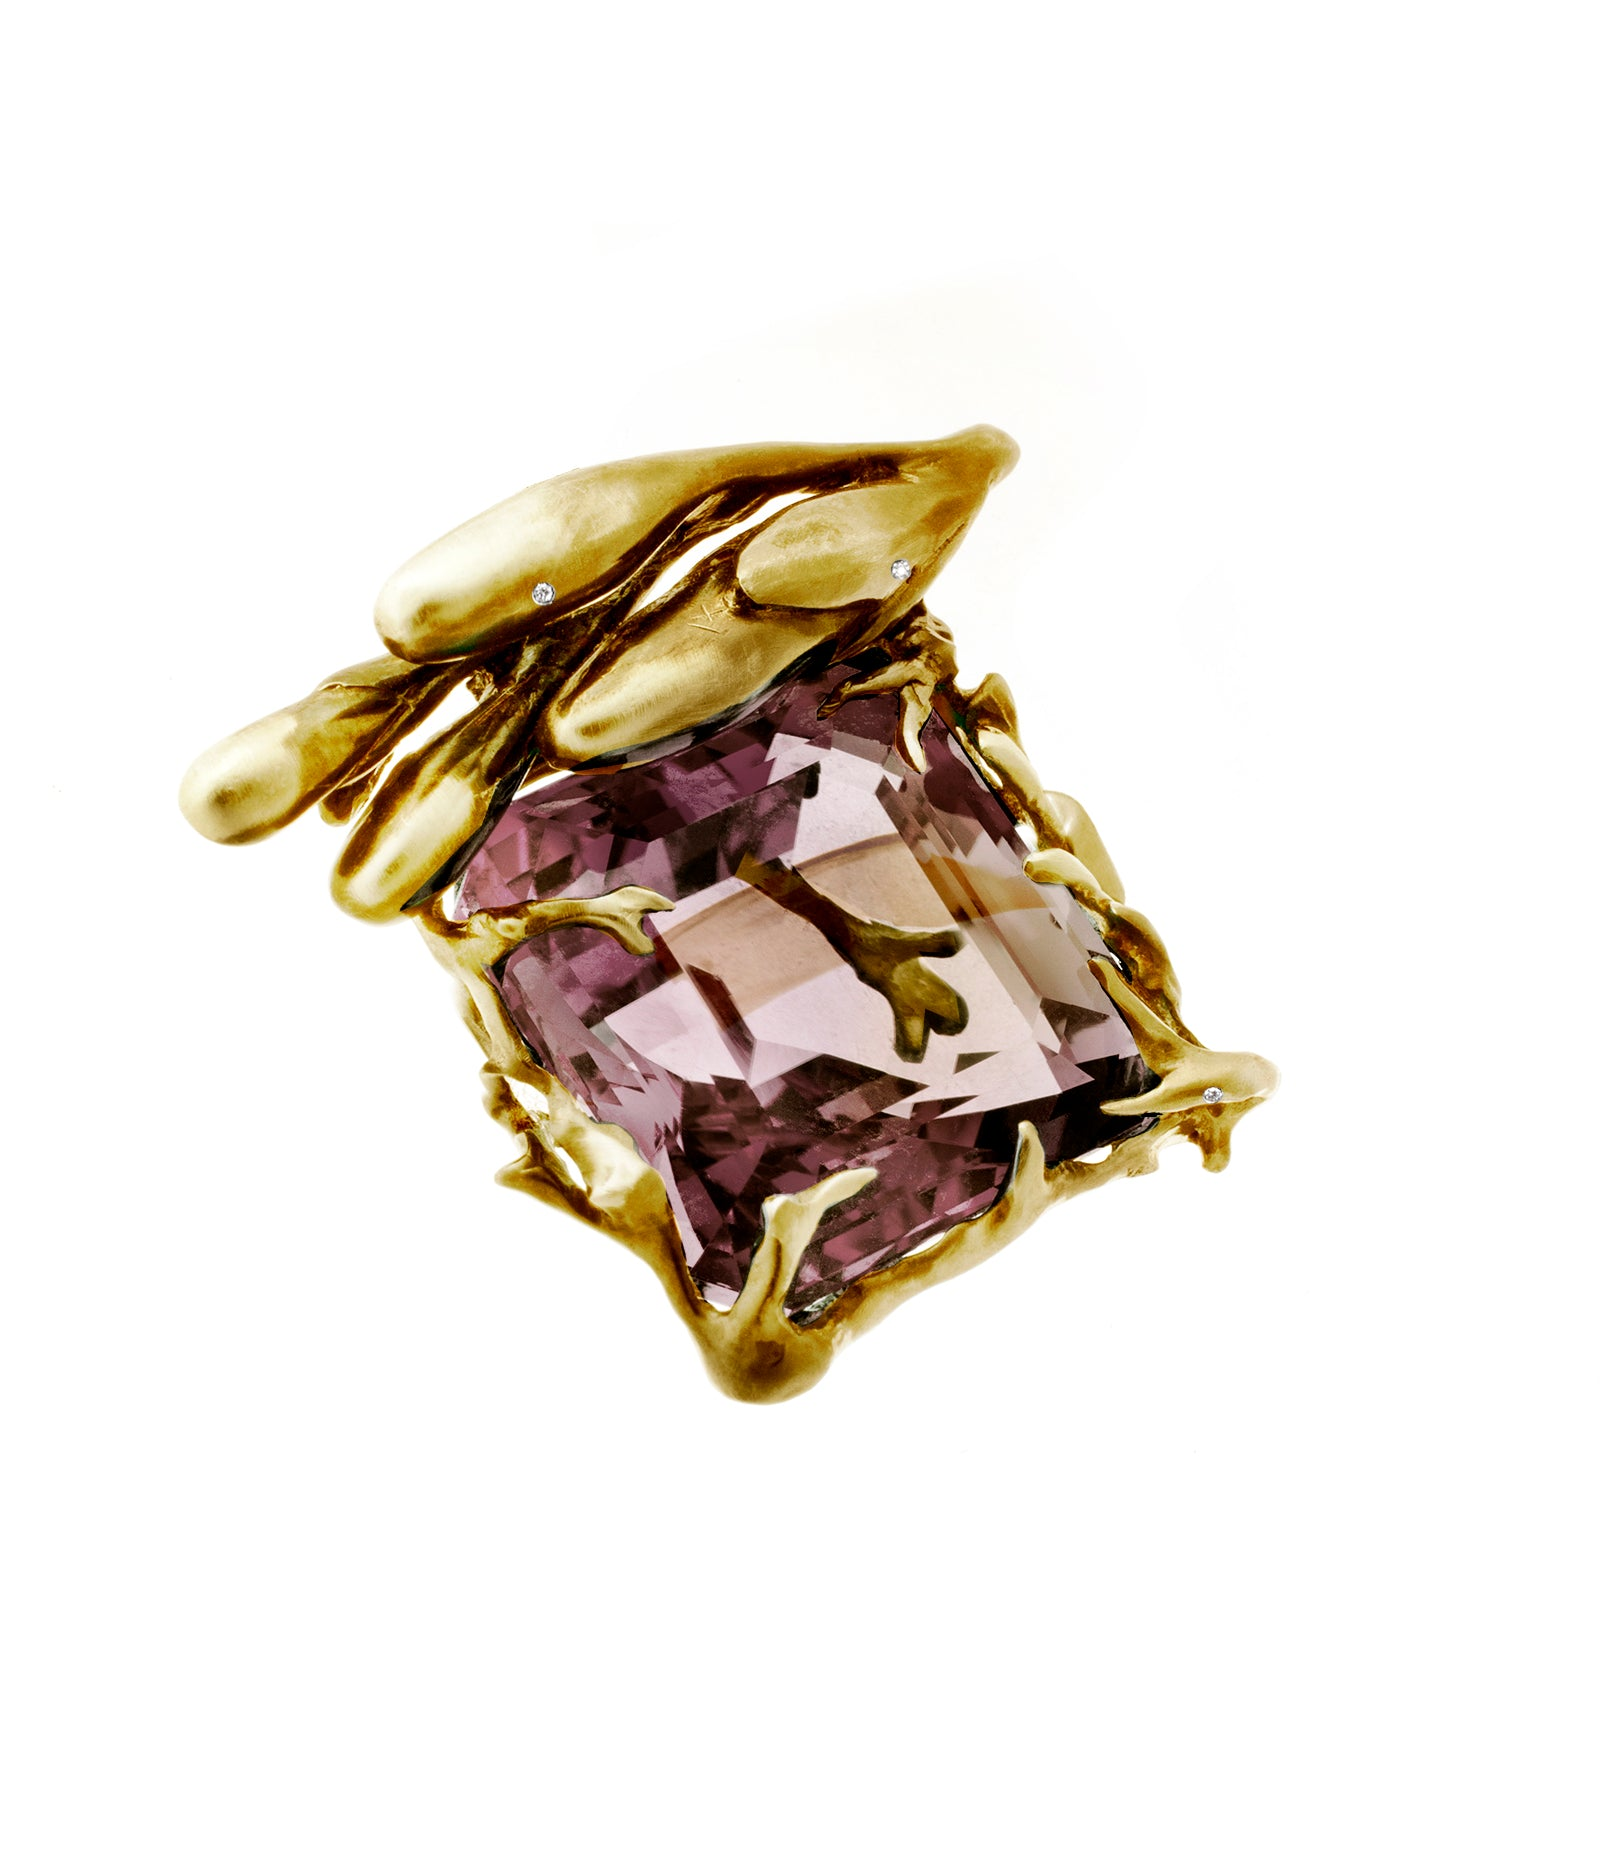 18 Karat Gold Ring by Artist with Rose Quartz and Diamonds